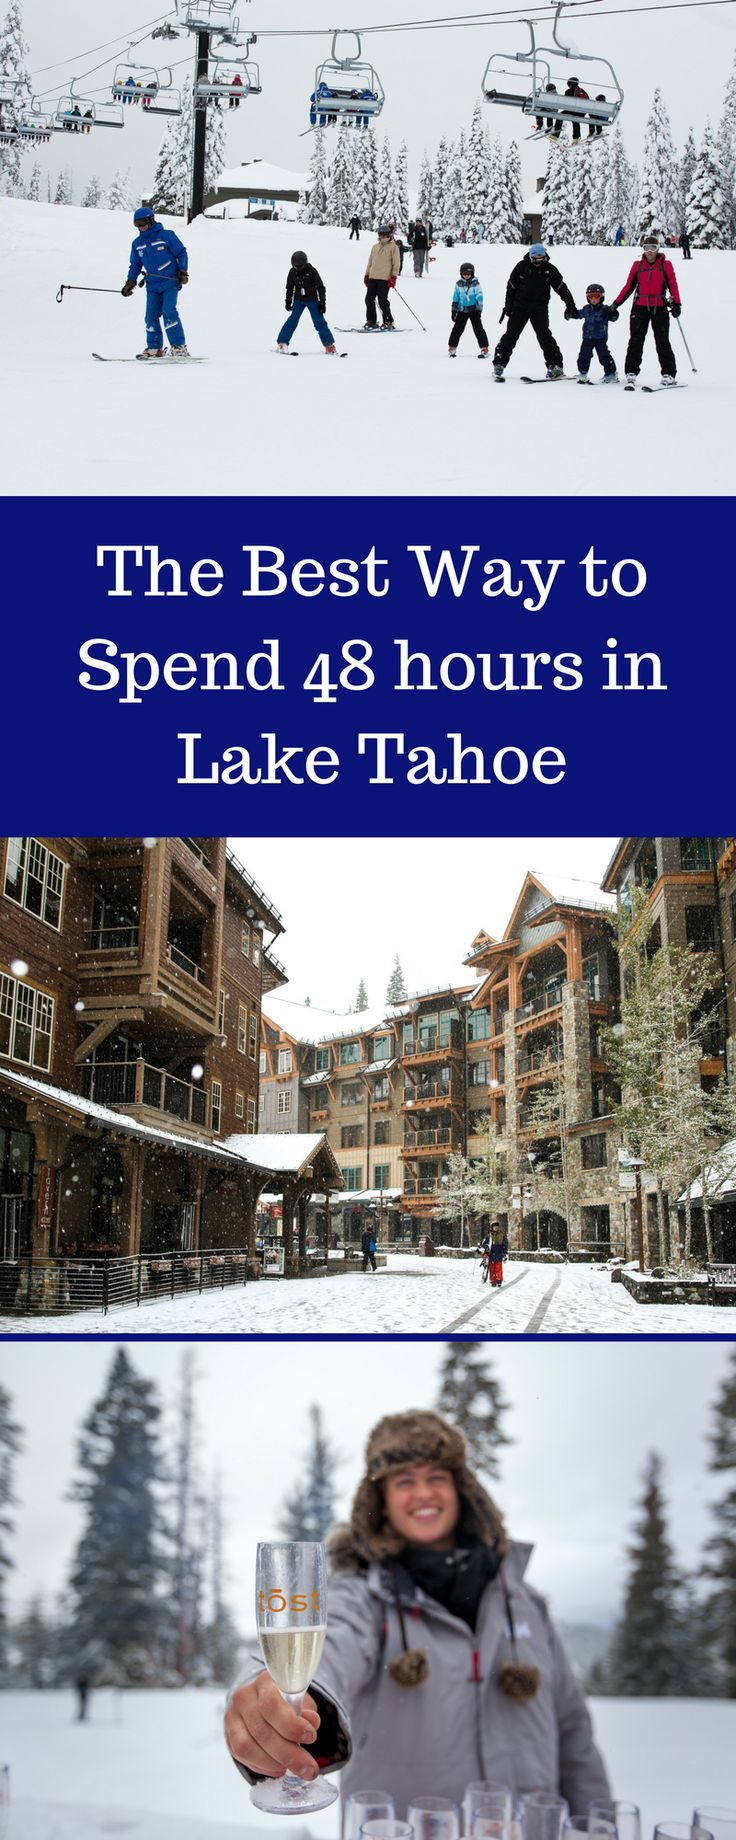 Lake Tahoe Winter Getaway | Vacation at Northstar Tahoe | North Shore Lake Tahoe, CA | Activities at Northstar Village and The Ritz